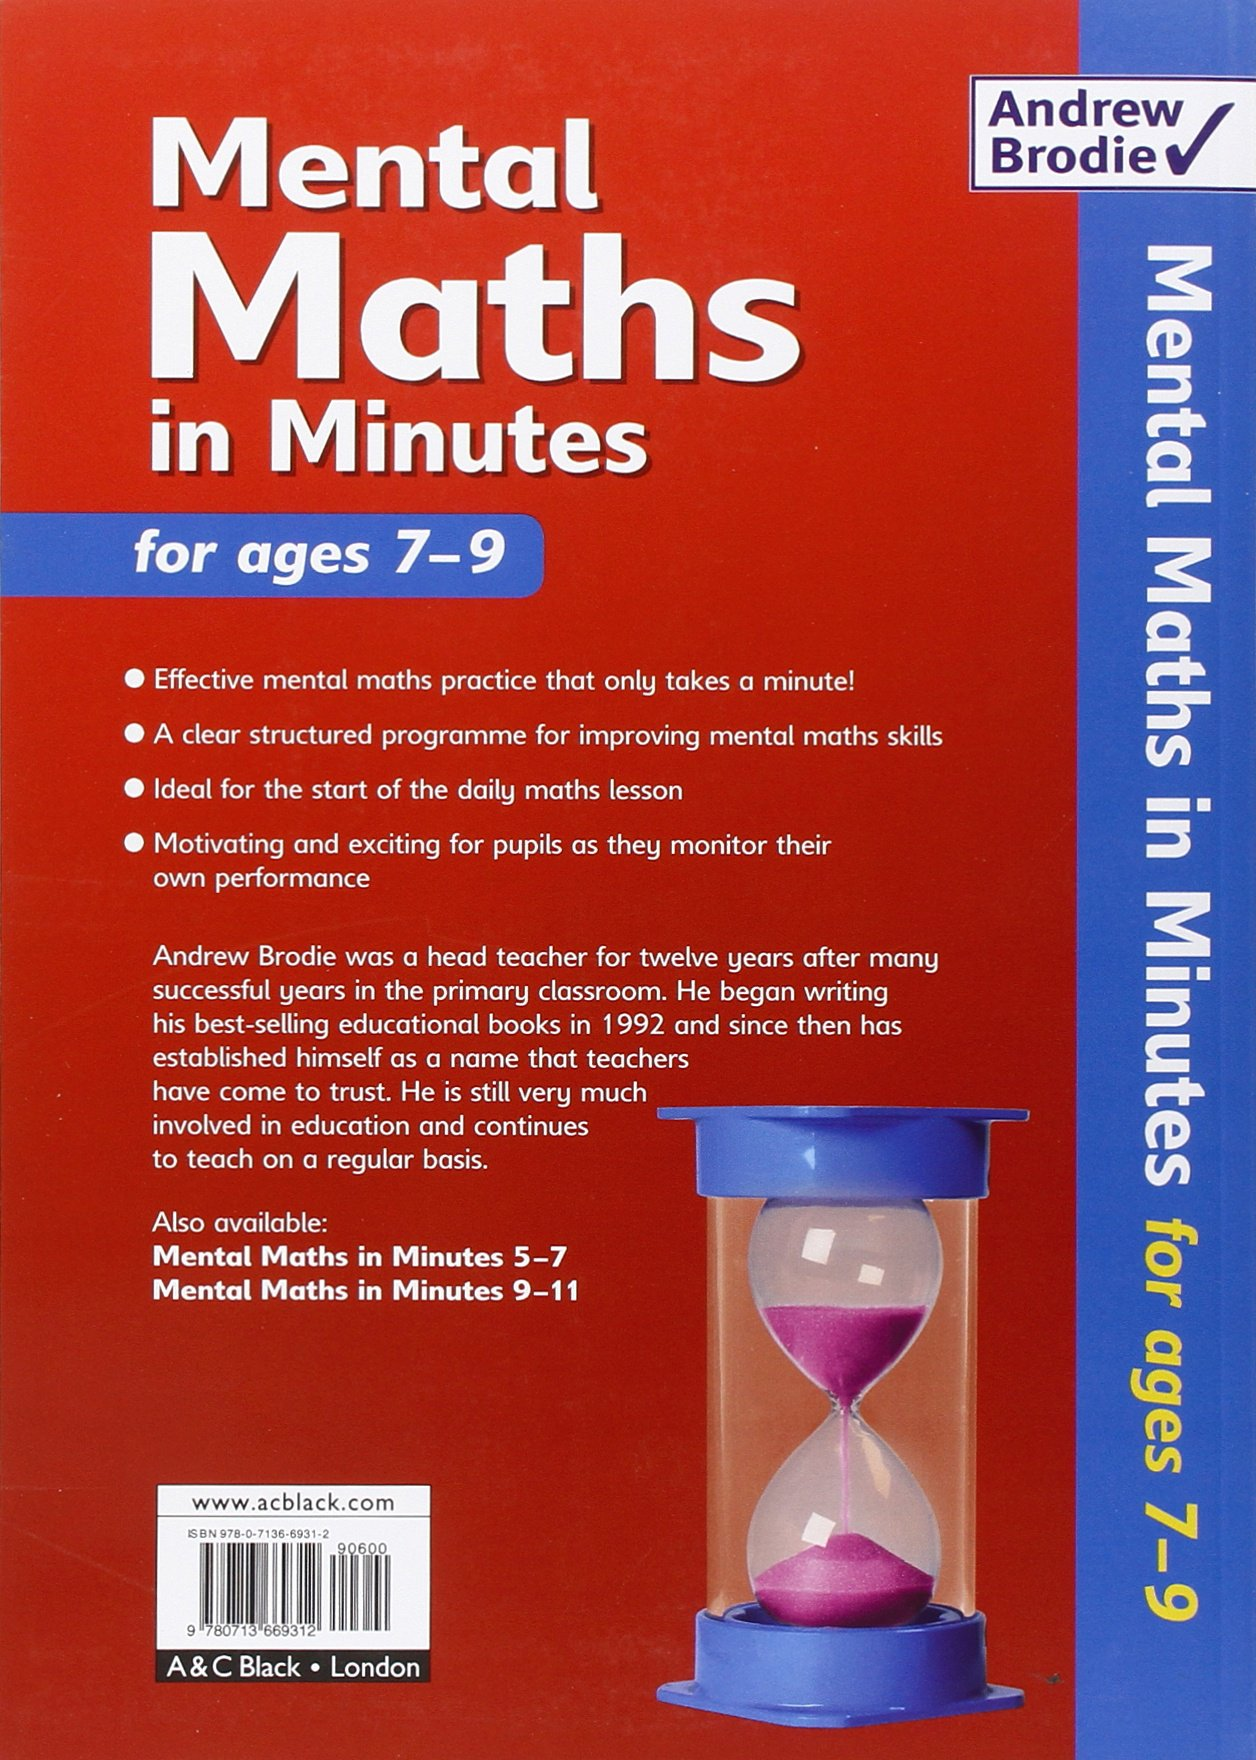 Mental Maths in Minutes for Ages 7-9: Photocopiable Resources Book for  Mental Maths Practice